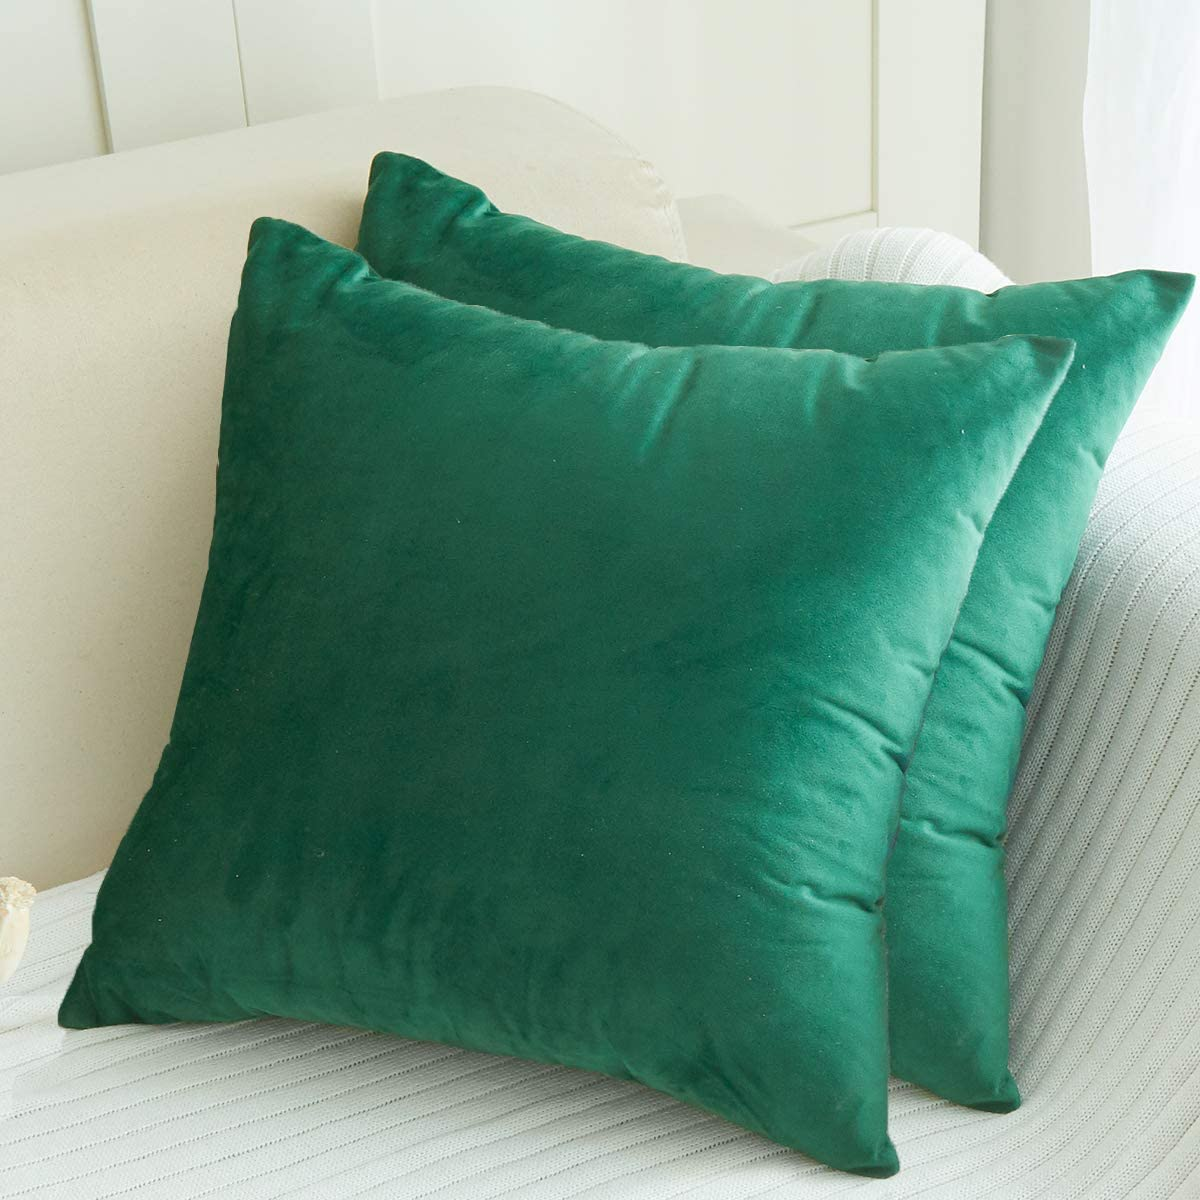 LHKIS Throw Pillow Covers 18x18 for Couch, Set of 2 Decrative Sofa Accent Cojines, Green